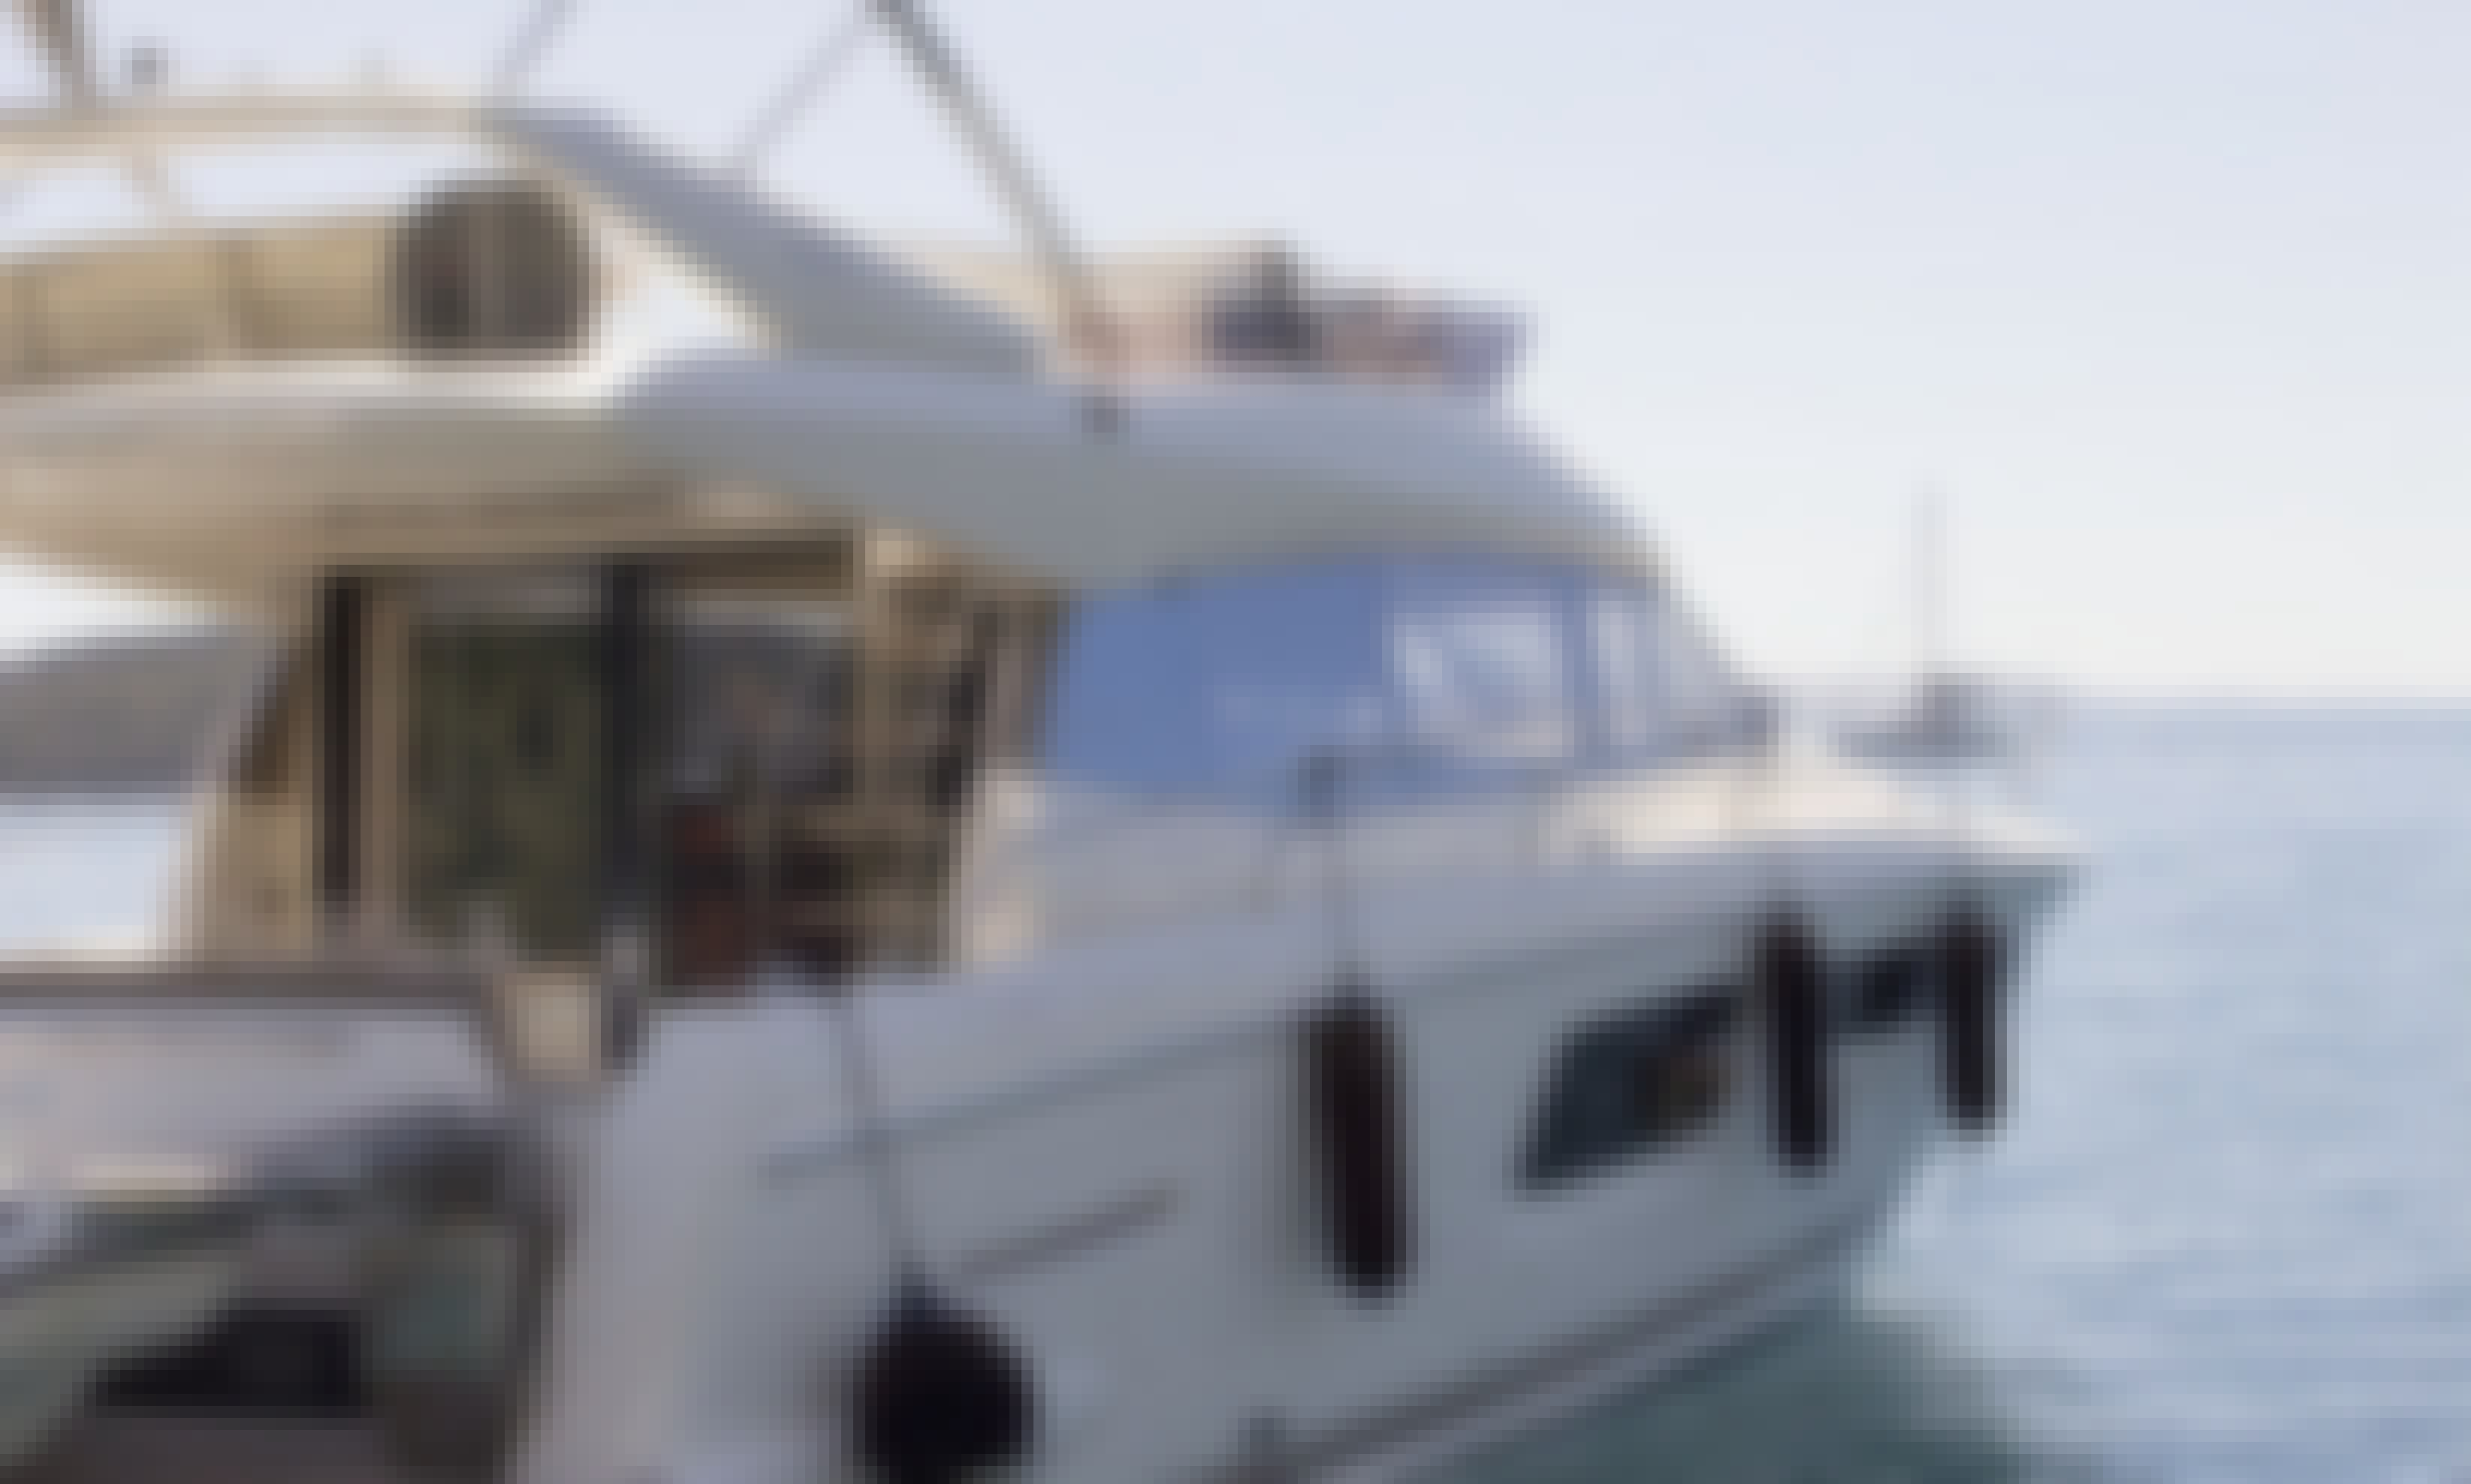 Excellent Prestige 500 Motor Yacht Charter - Perfect for Party in Antibes, France